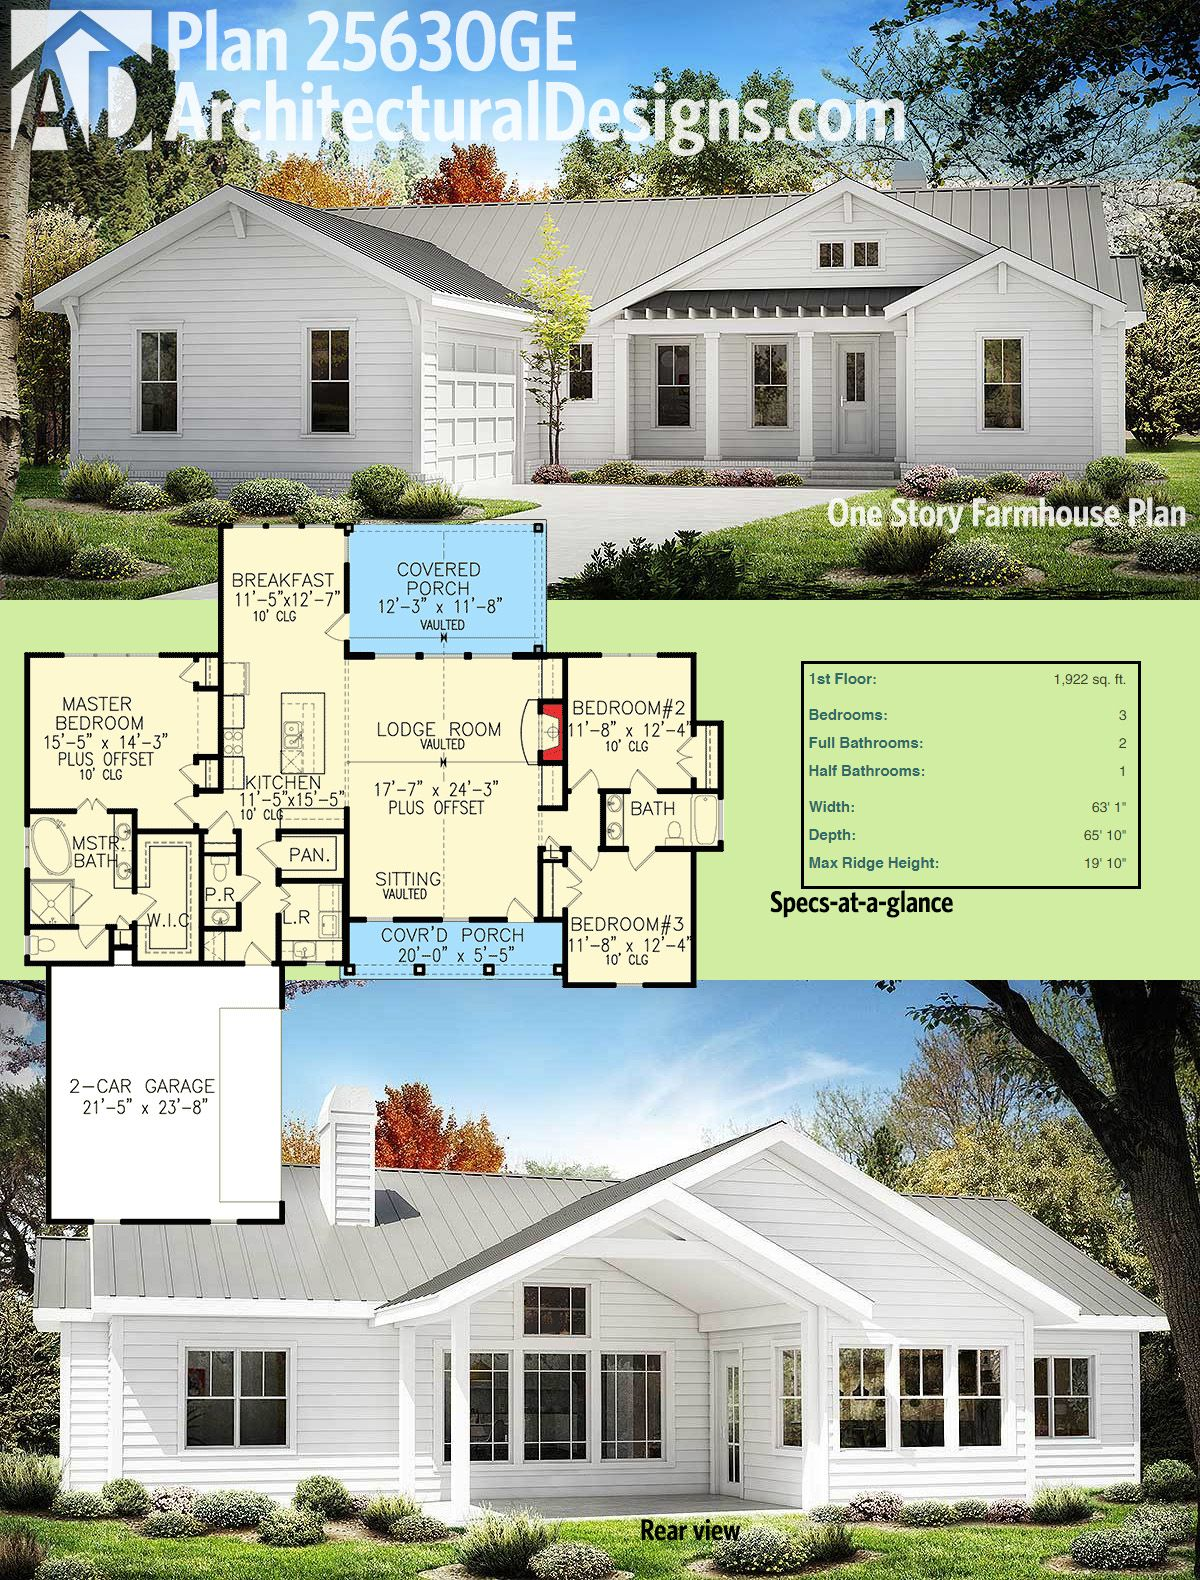 Best Kitchen Gallery: Plan 25630ge One Story Farmhouse Plan Pinterest Farmhouse Plans of Three Story Modern Ranch Style House Plans on rachelxblog.com